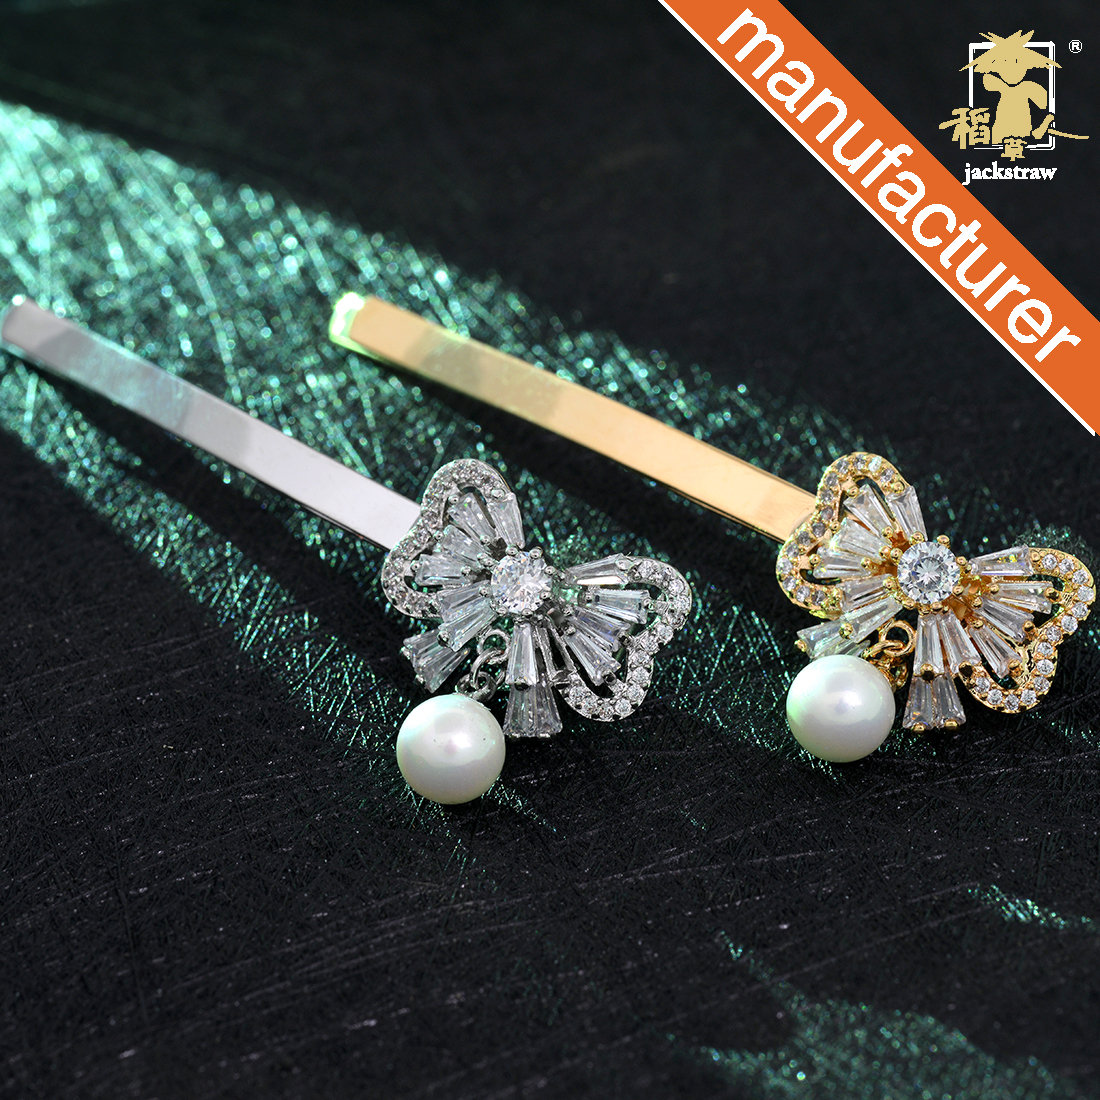 Diamond and Pearl studded Butterfly hair clips for girls in gold metal